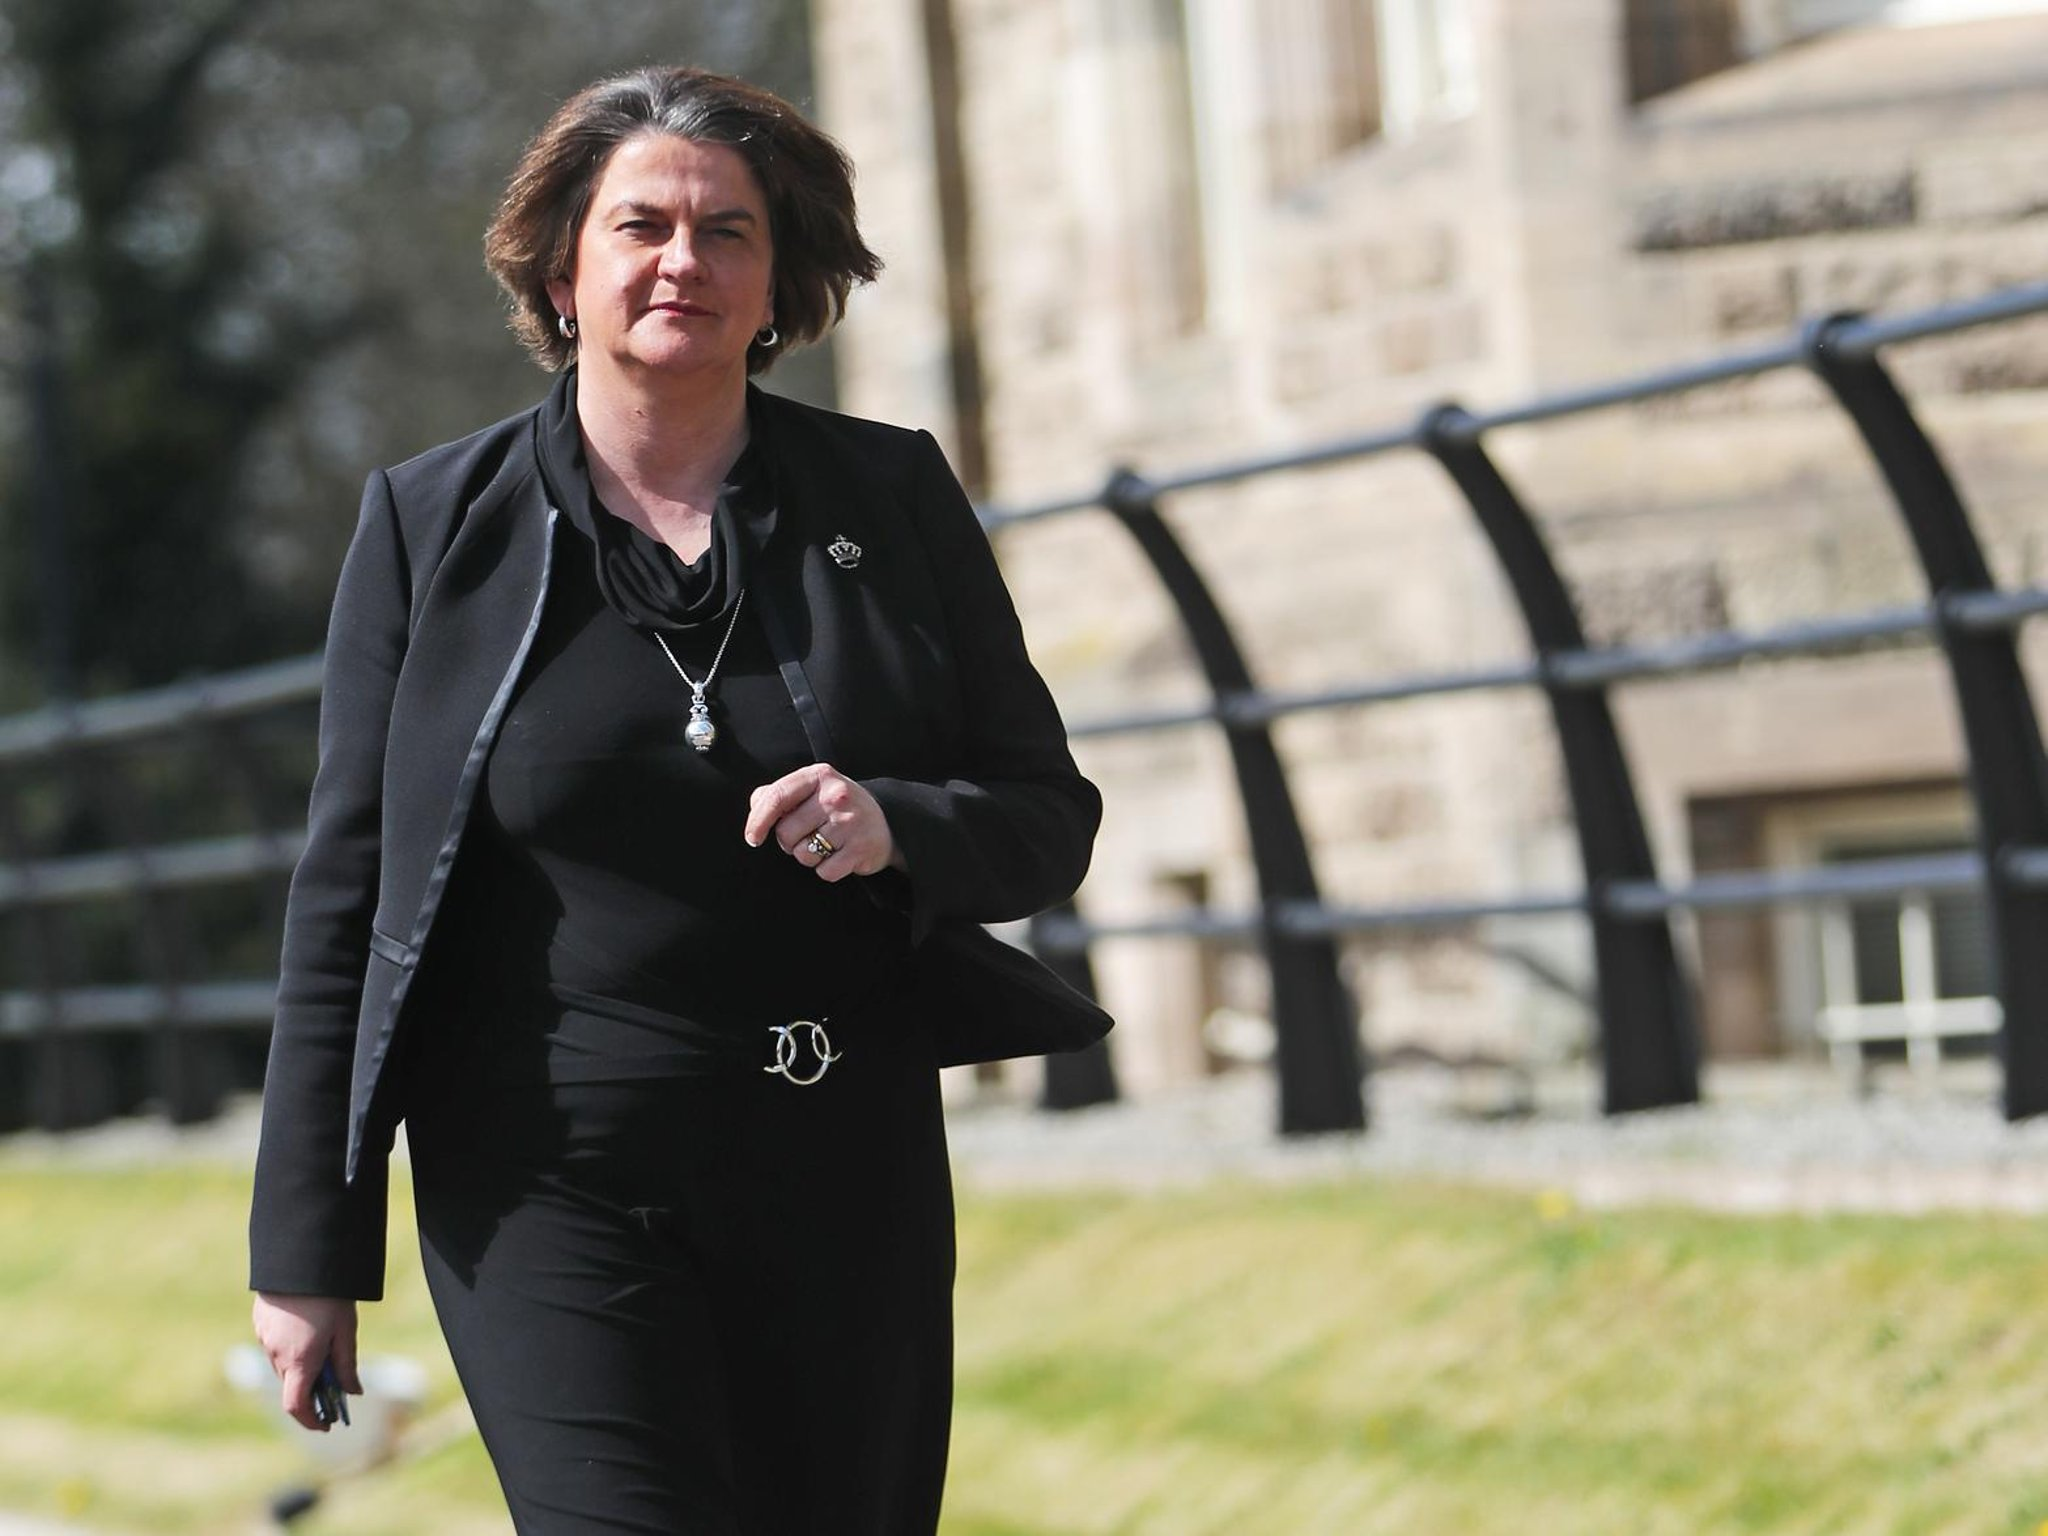 Lifting of restrictions Northern Ireland - Arlene Foster hints that some reopening dates could be brought forward